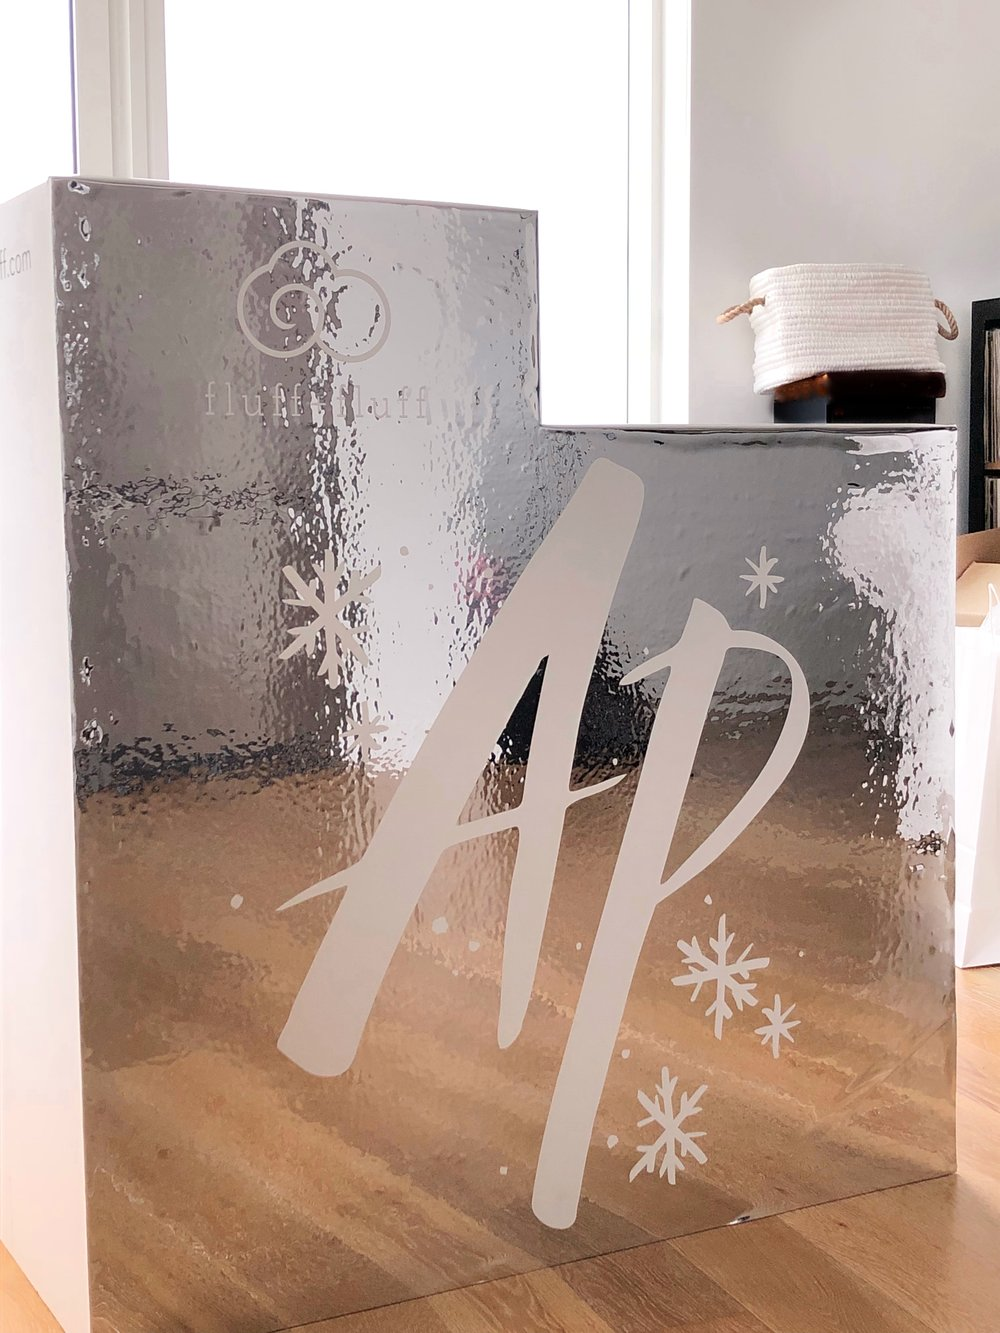 Mirrored Counter Wrap with artwork